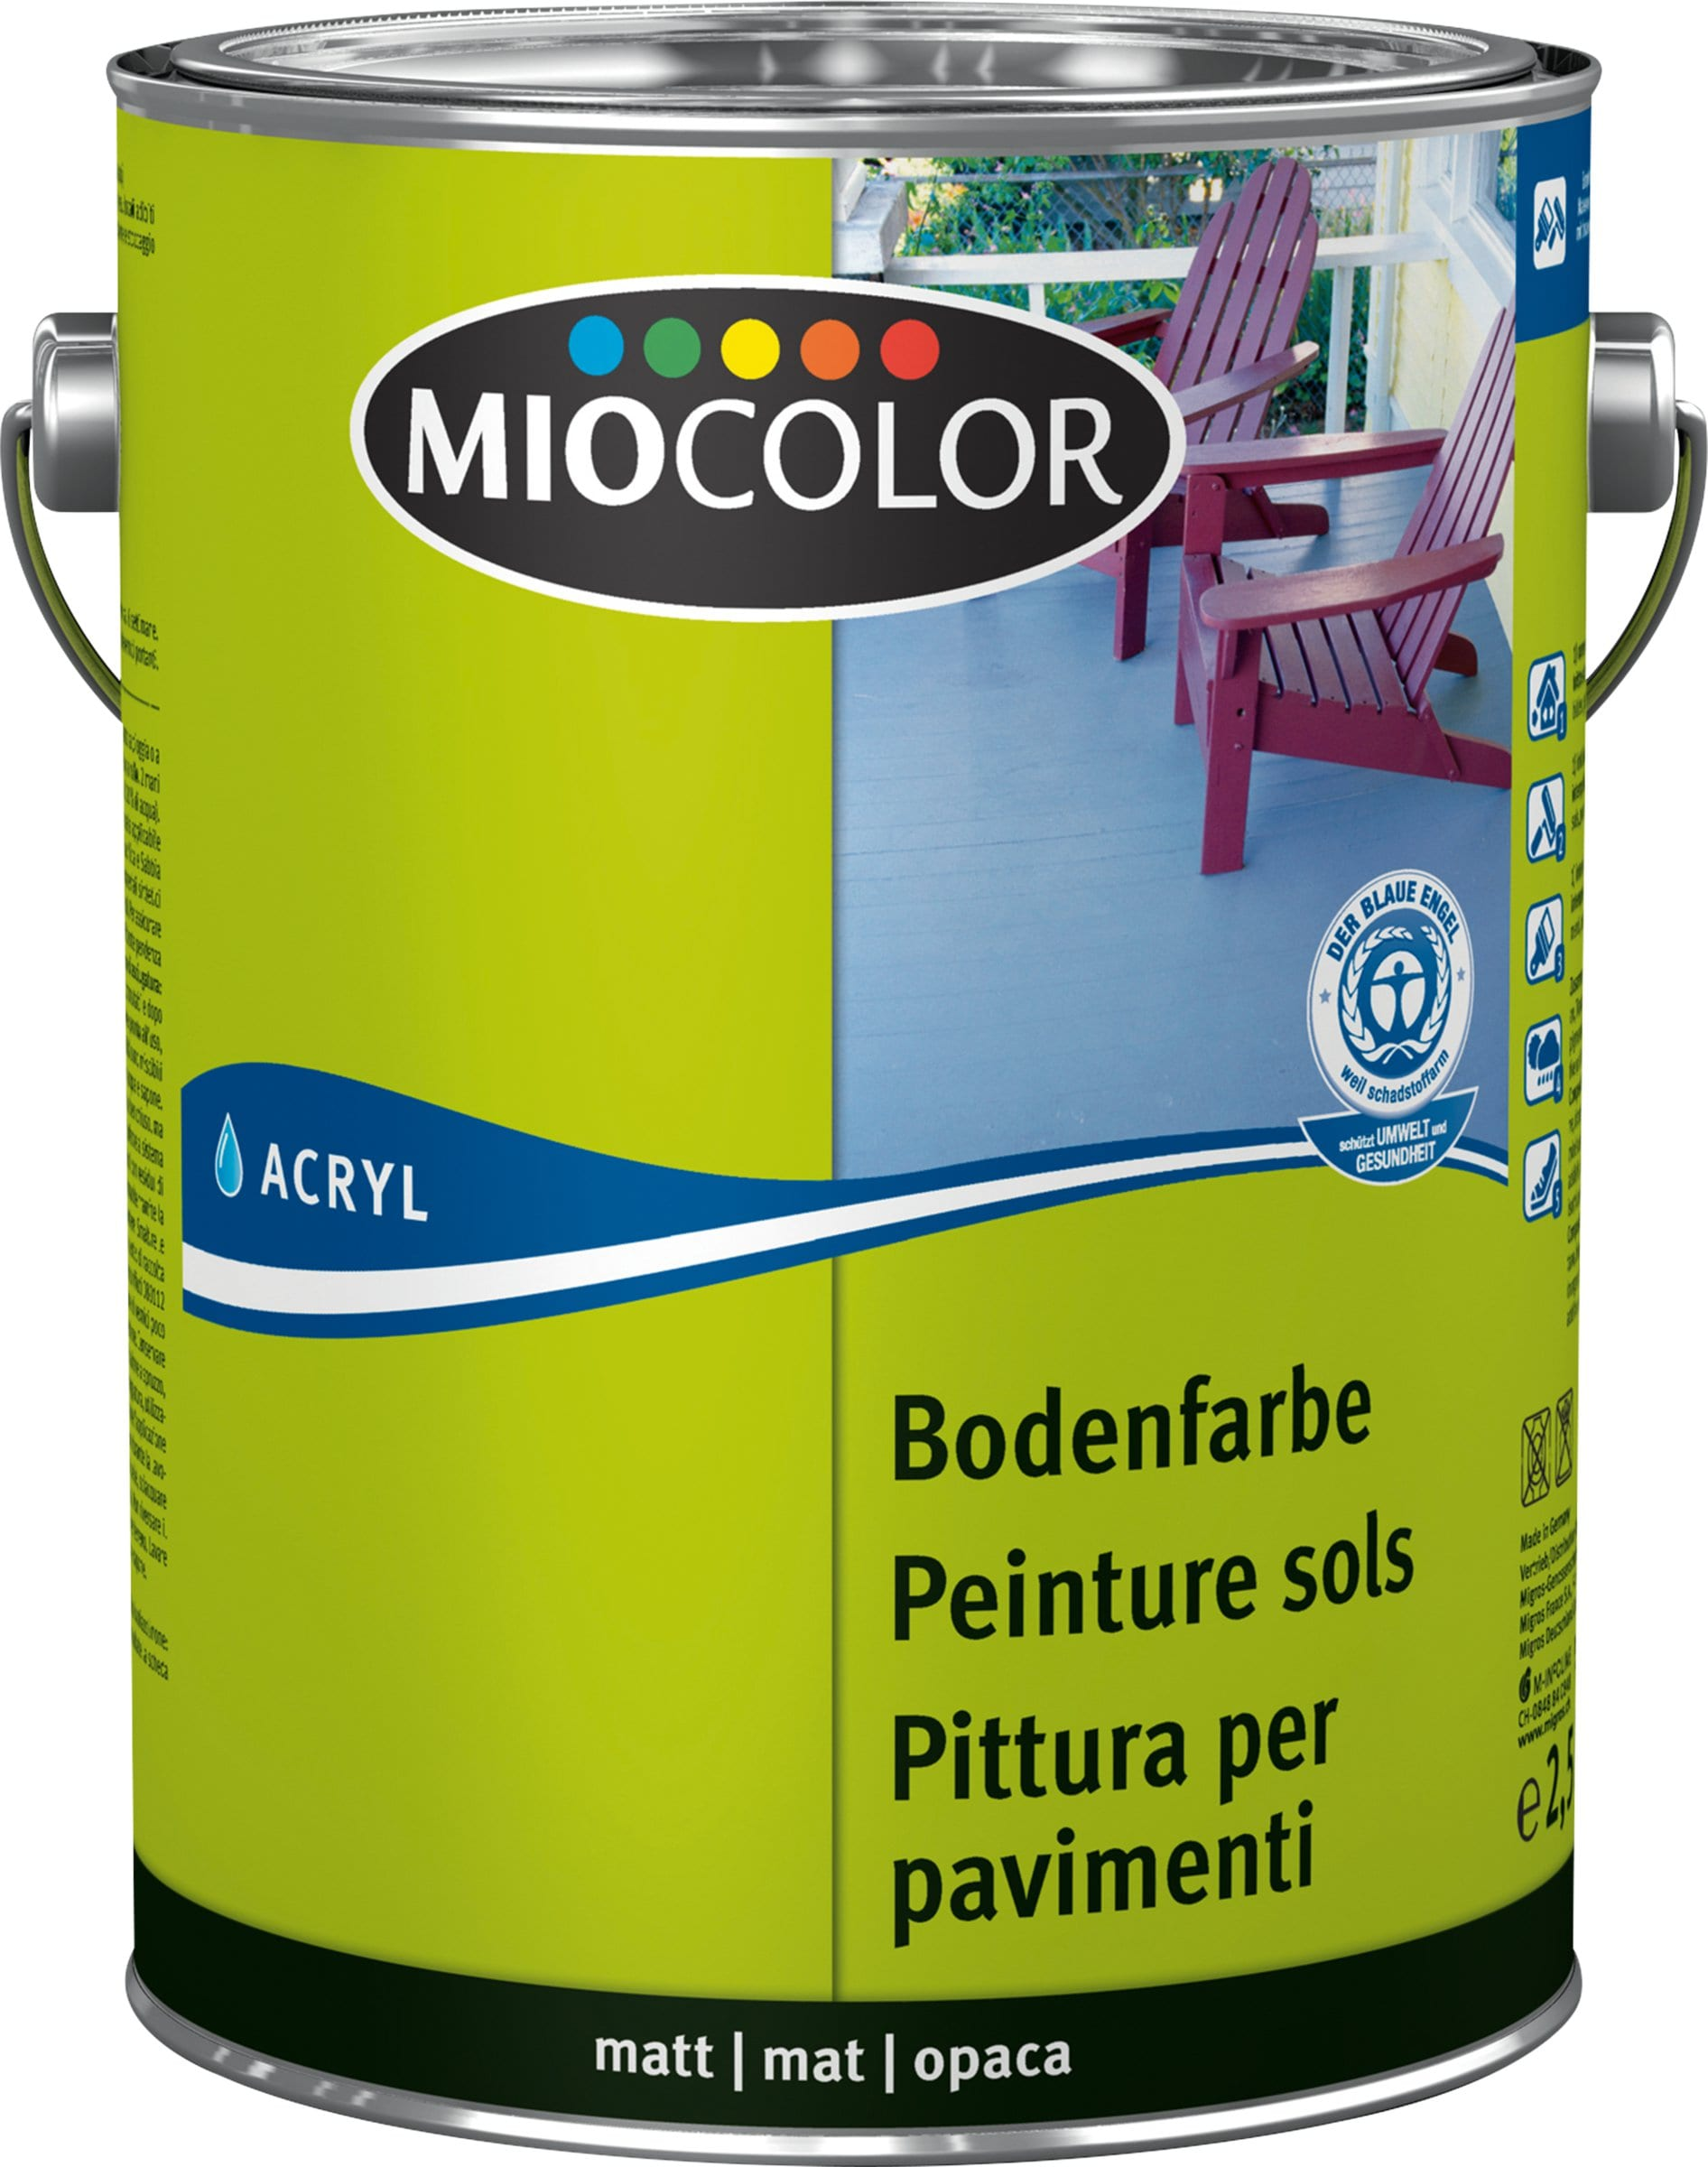 Miocolor Acryl Bodenfarbe Weiss 2.5 l